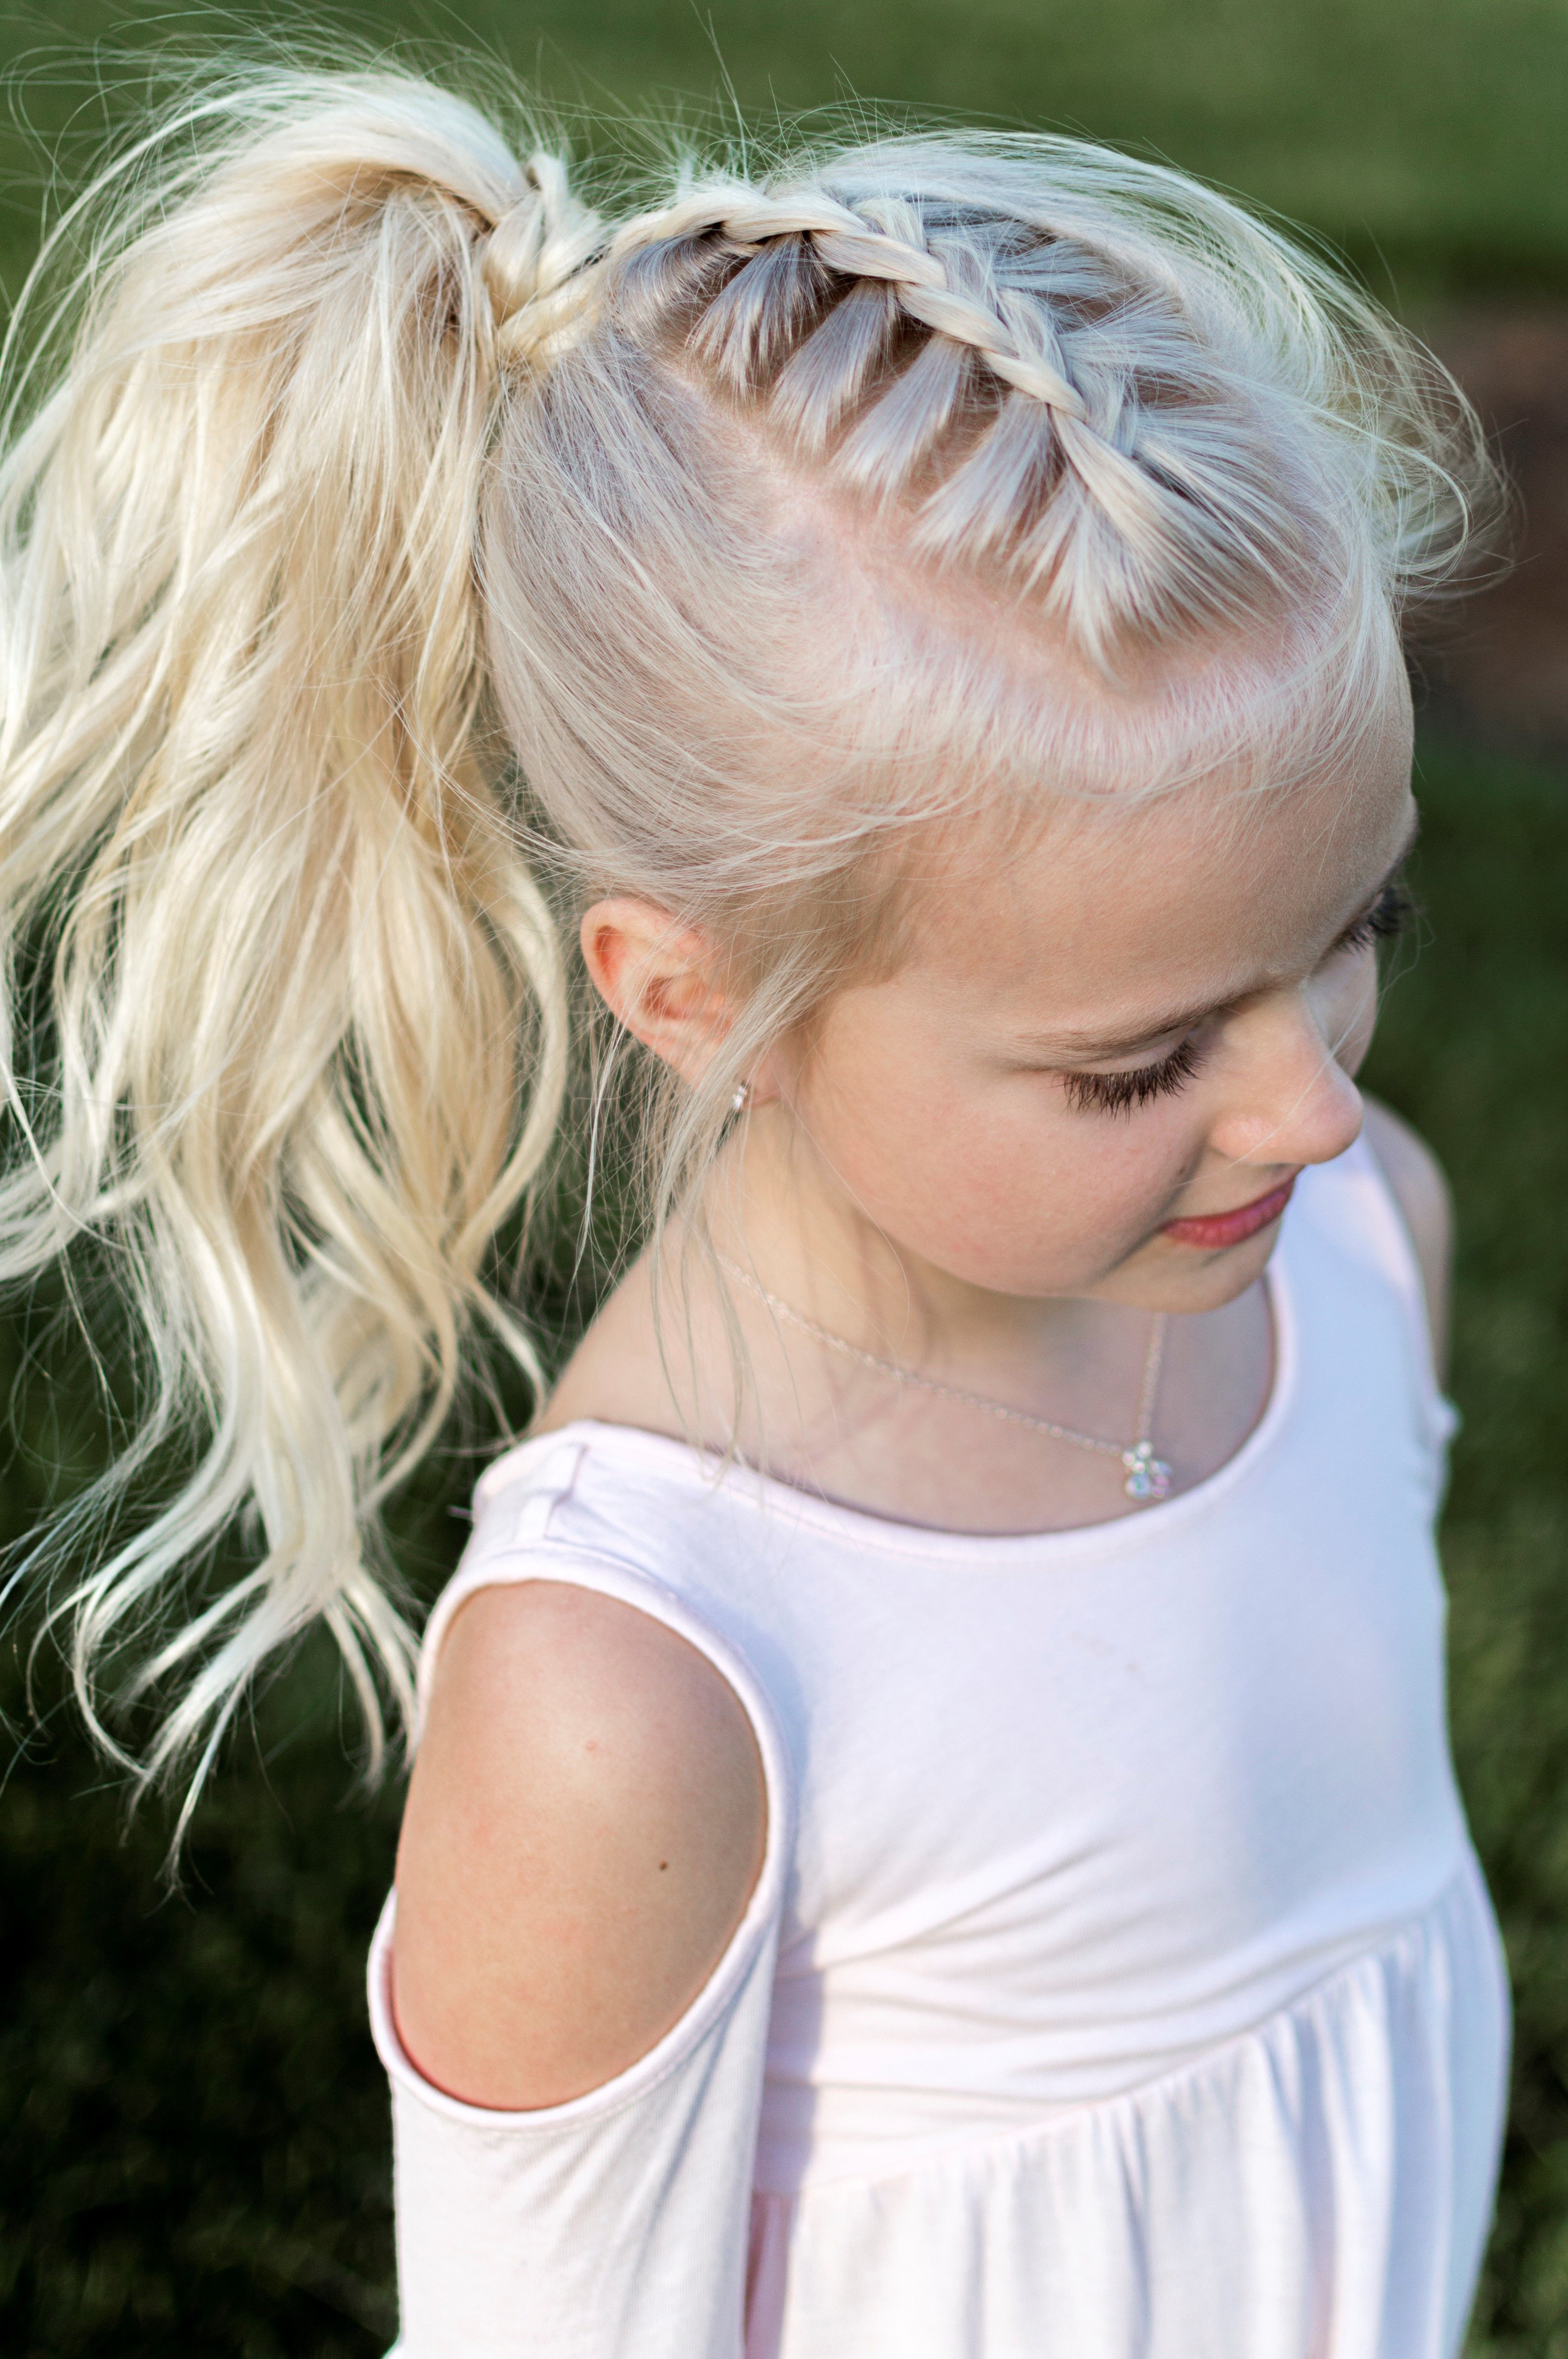 Little Girl Hairstyle French Braid Pony Tail Curls High Pony Volumized Pony Hair Blonde Platinum Awesome Quick And Ea Hair Styles Girl Hair Dos Girl Hairstyles